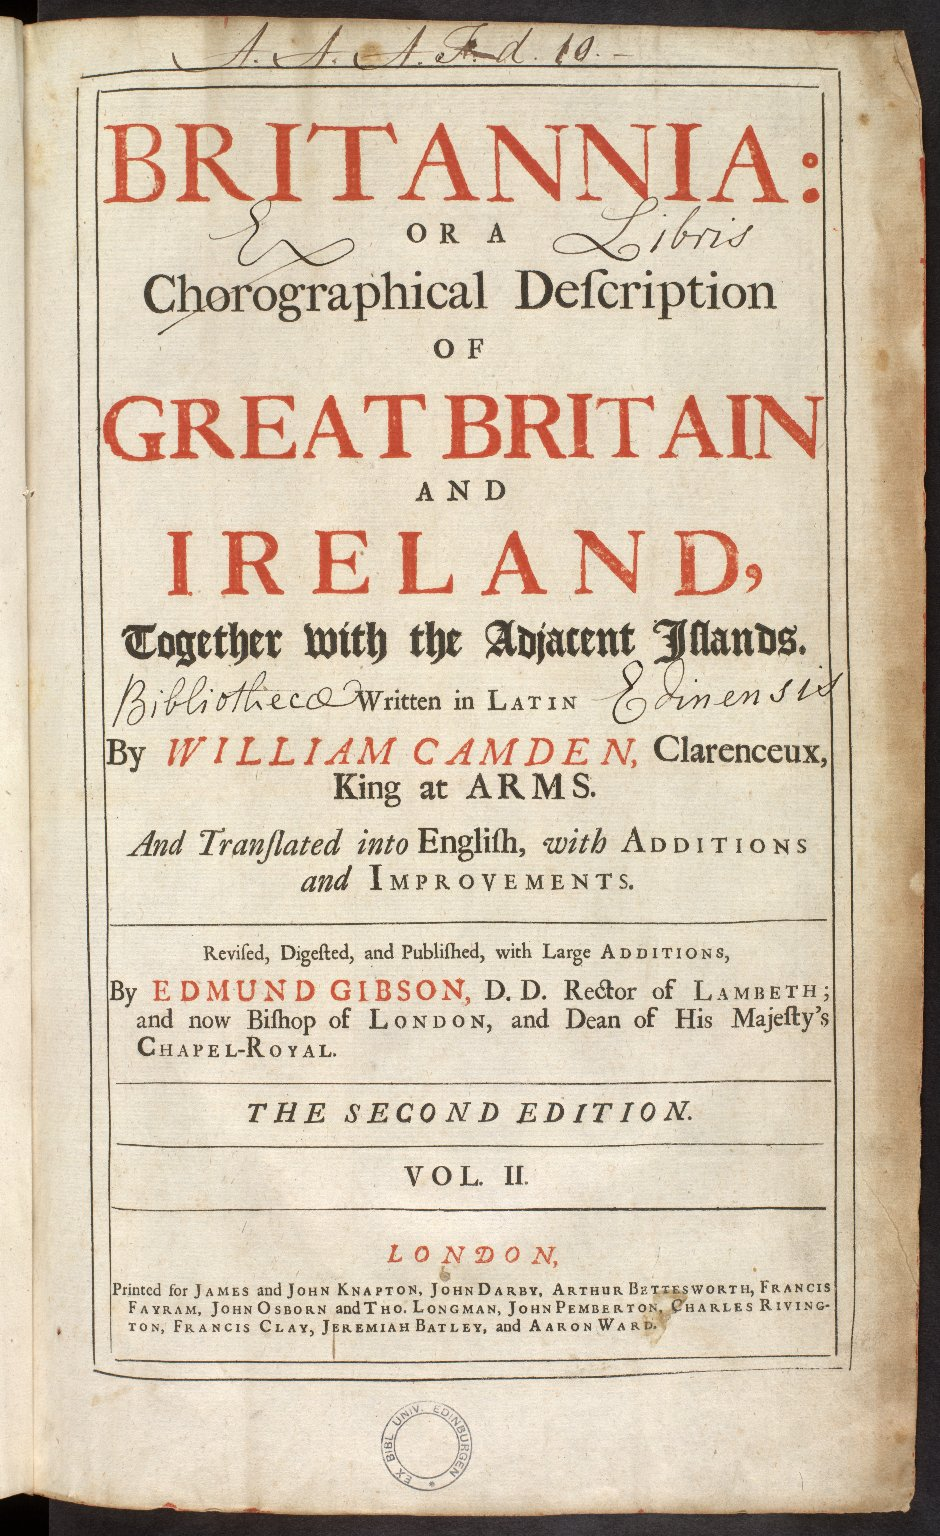 Britannia: or a chorographical description of Great Britain and Ireland, together with the adjacent islands. [1 of 1]